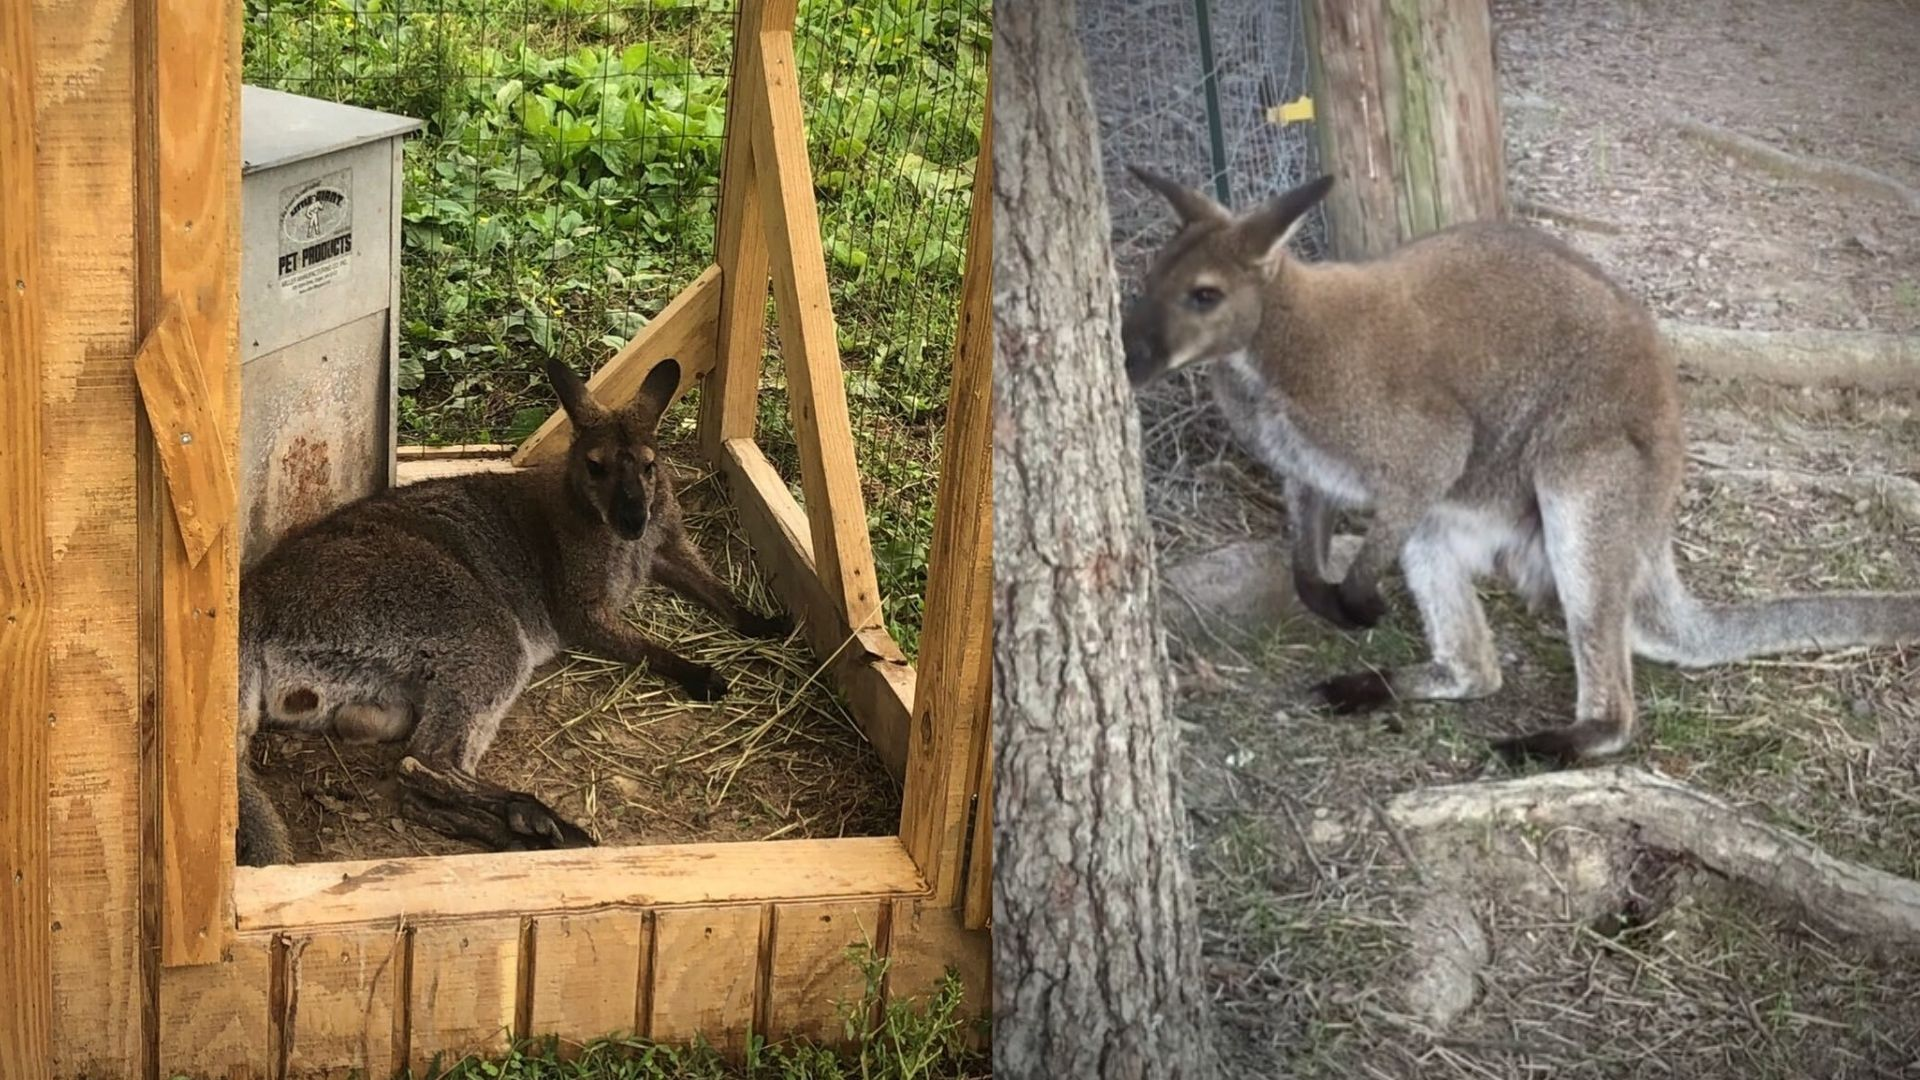 Update Missing Wallaby Wally Found Safe Wjhl Tri Cities News Weather